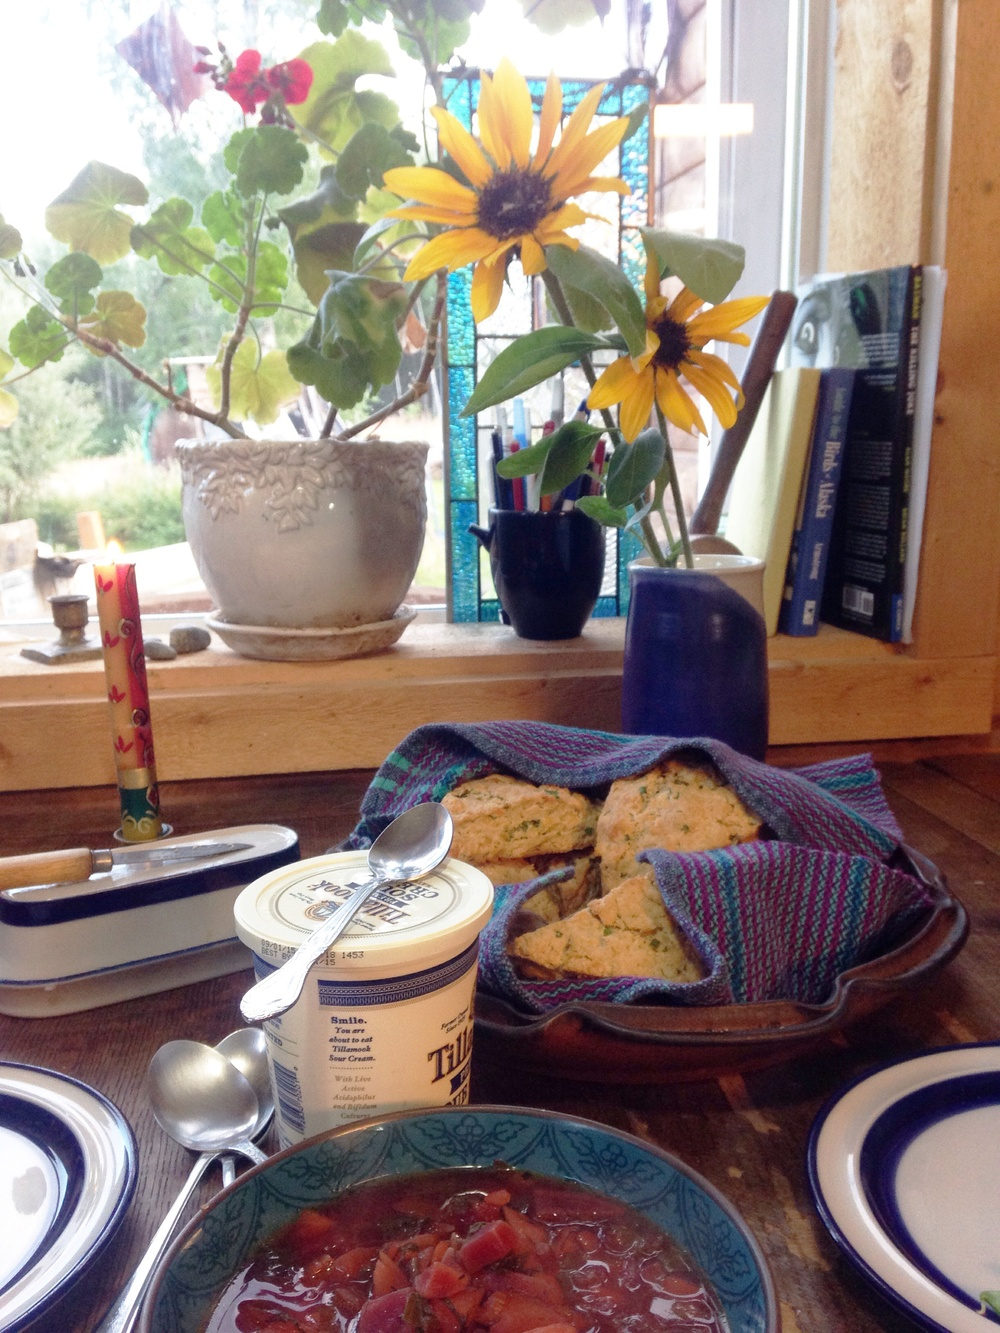 Borscht.  Garden beets.  Cheesy scones with garden chives and garden parsley.